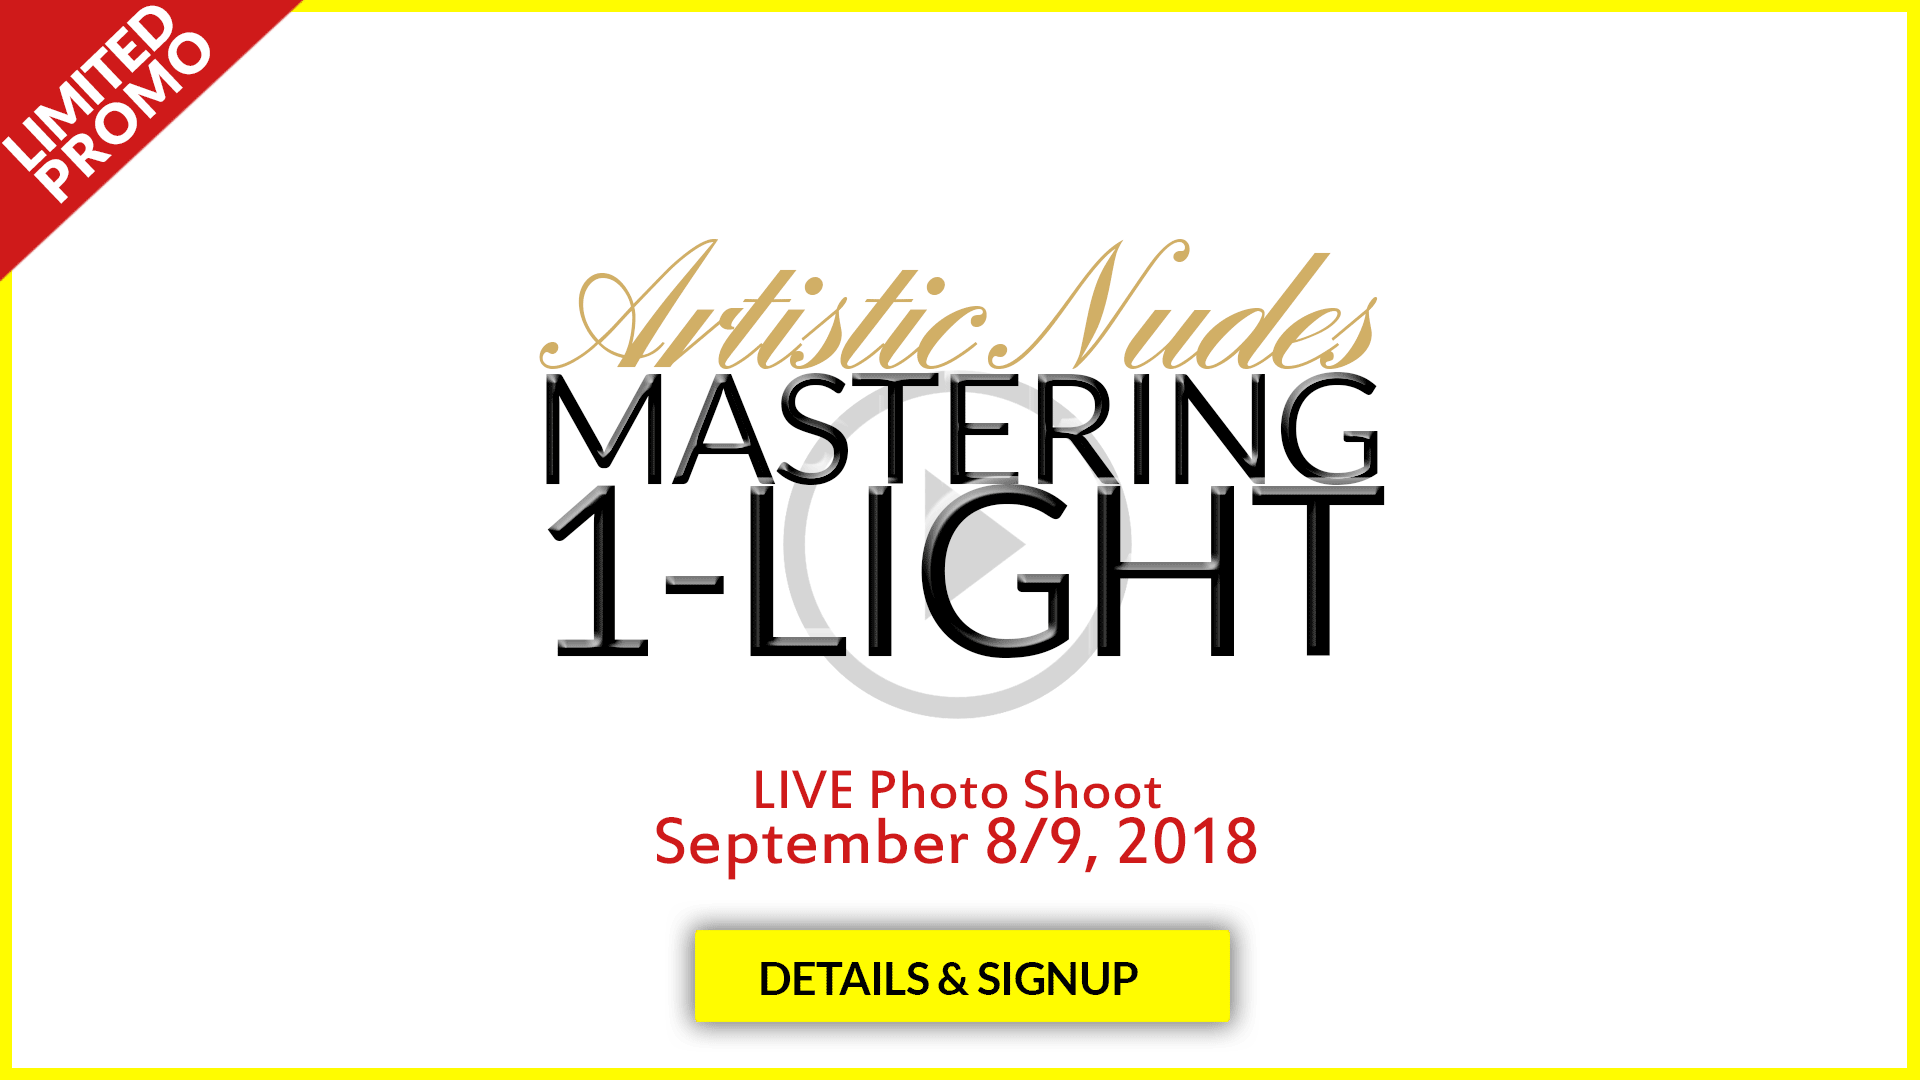 Artistic Nude Photography - Mastering 1 Light - LIVE Photo Shoot